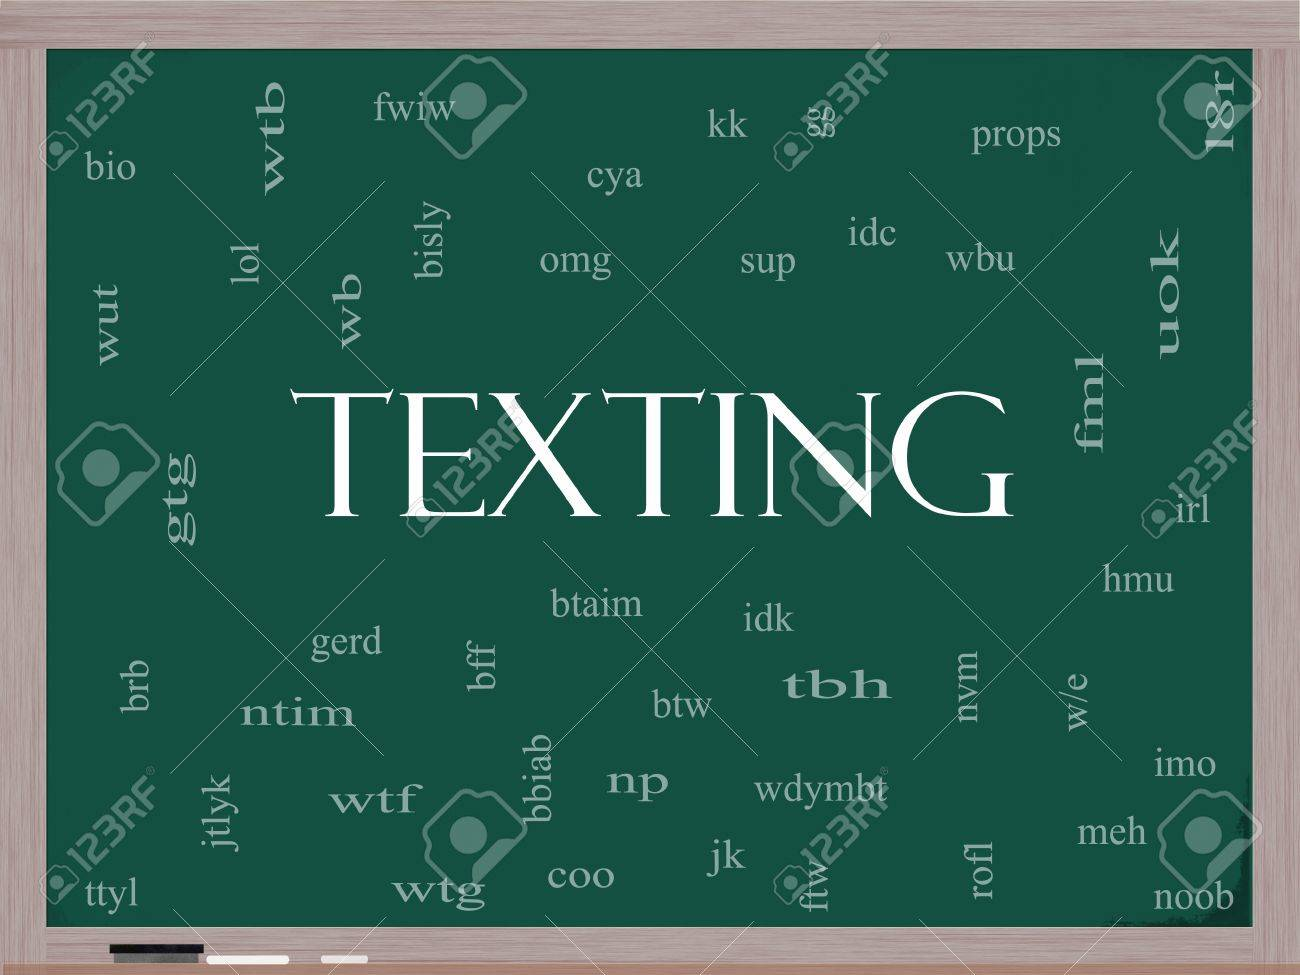 Texting Word Cloud Concept on a Blackboard with acronyms for terms such as oh my god, omg, be right back, lol and more. Stock Photo - 15498151